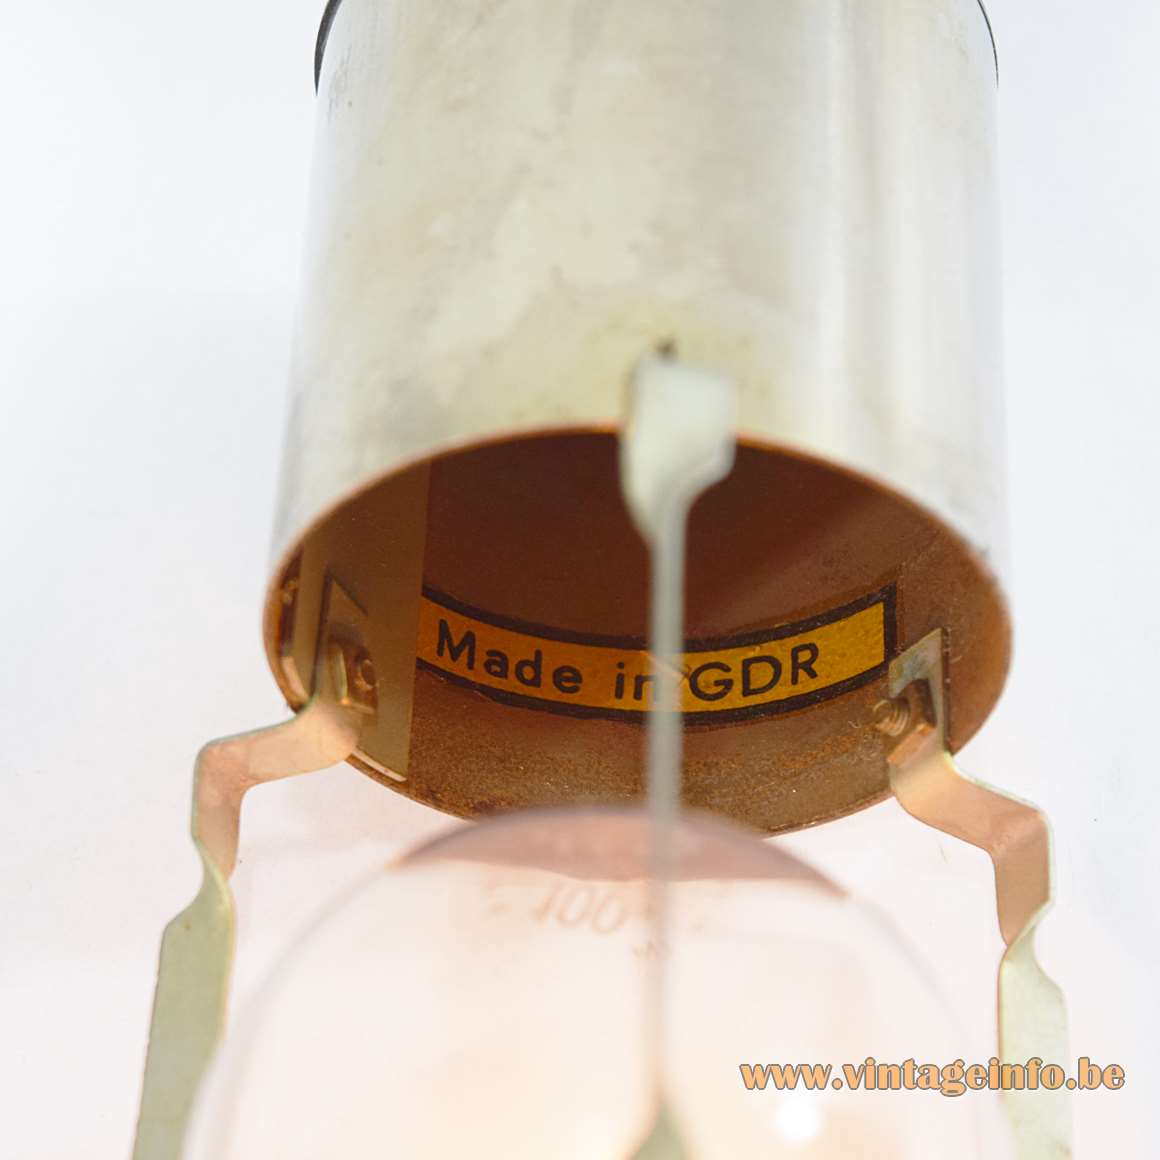 East German Table Lamp - Made in GDR label